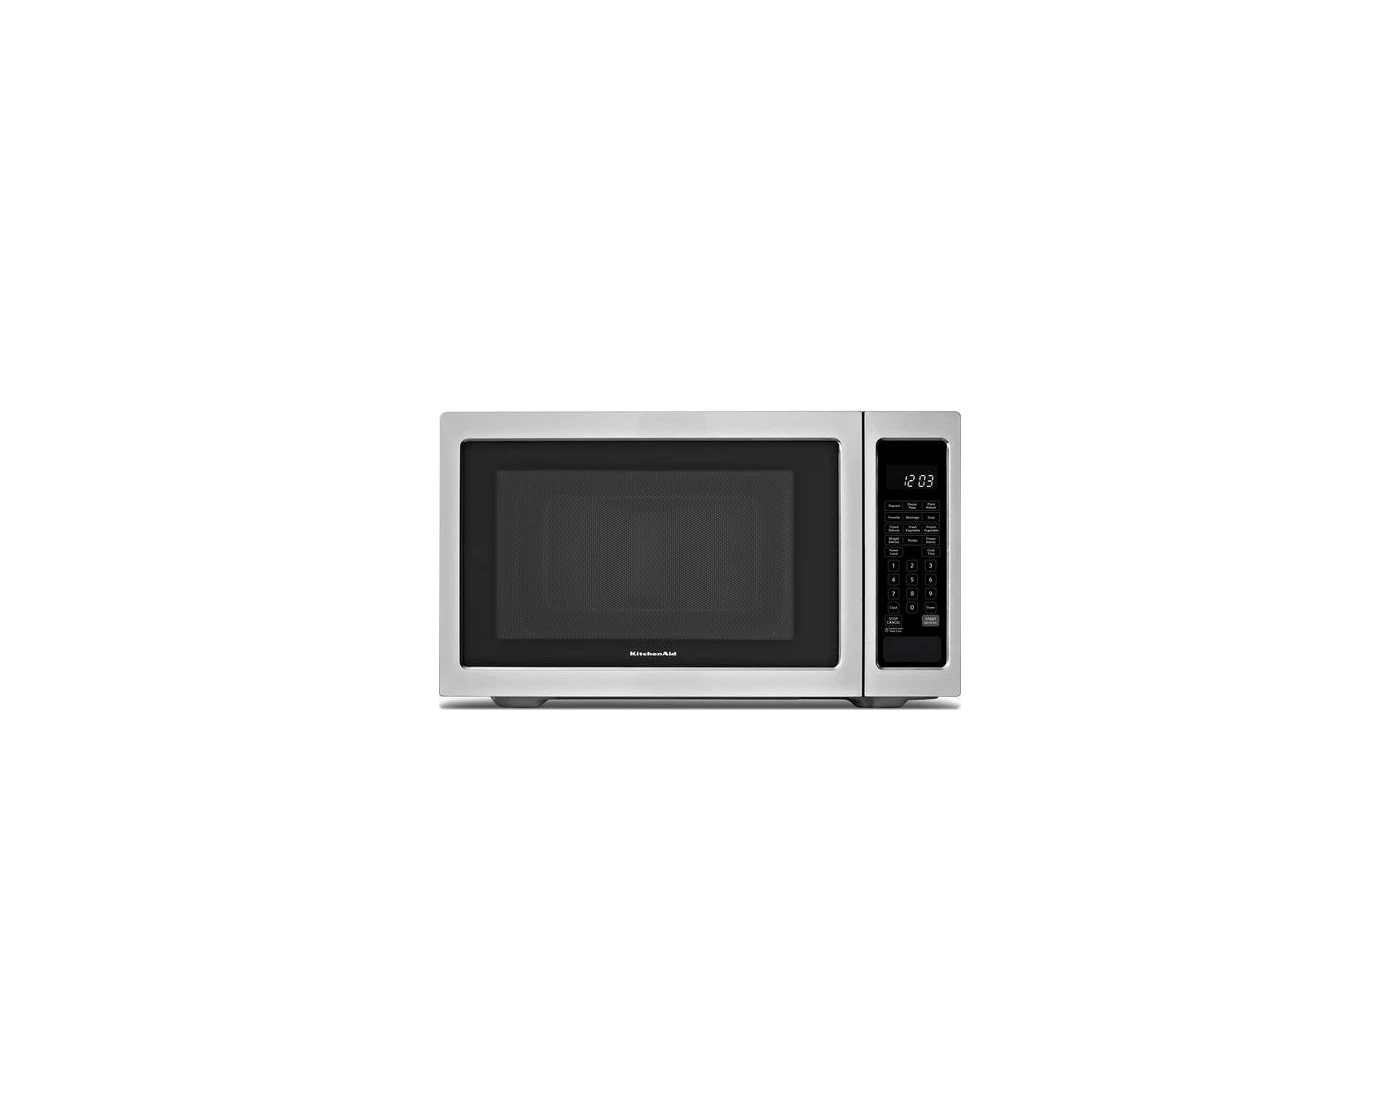 kcms2255bss by kitchenaid countertop microwaves goedekers com